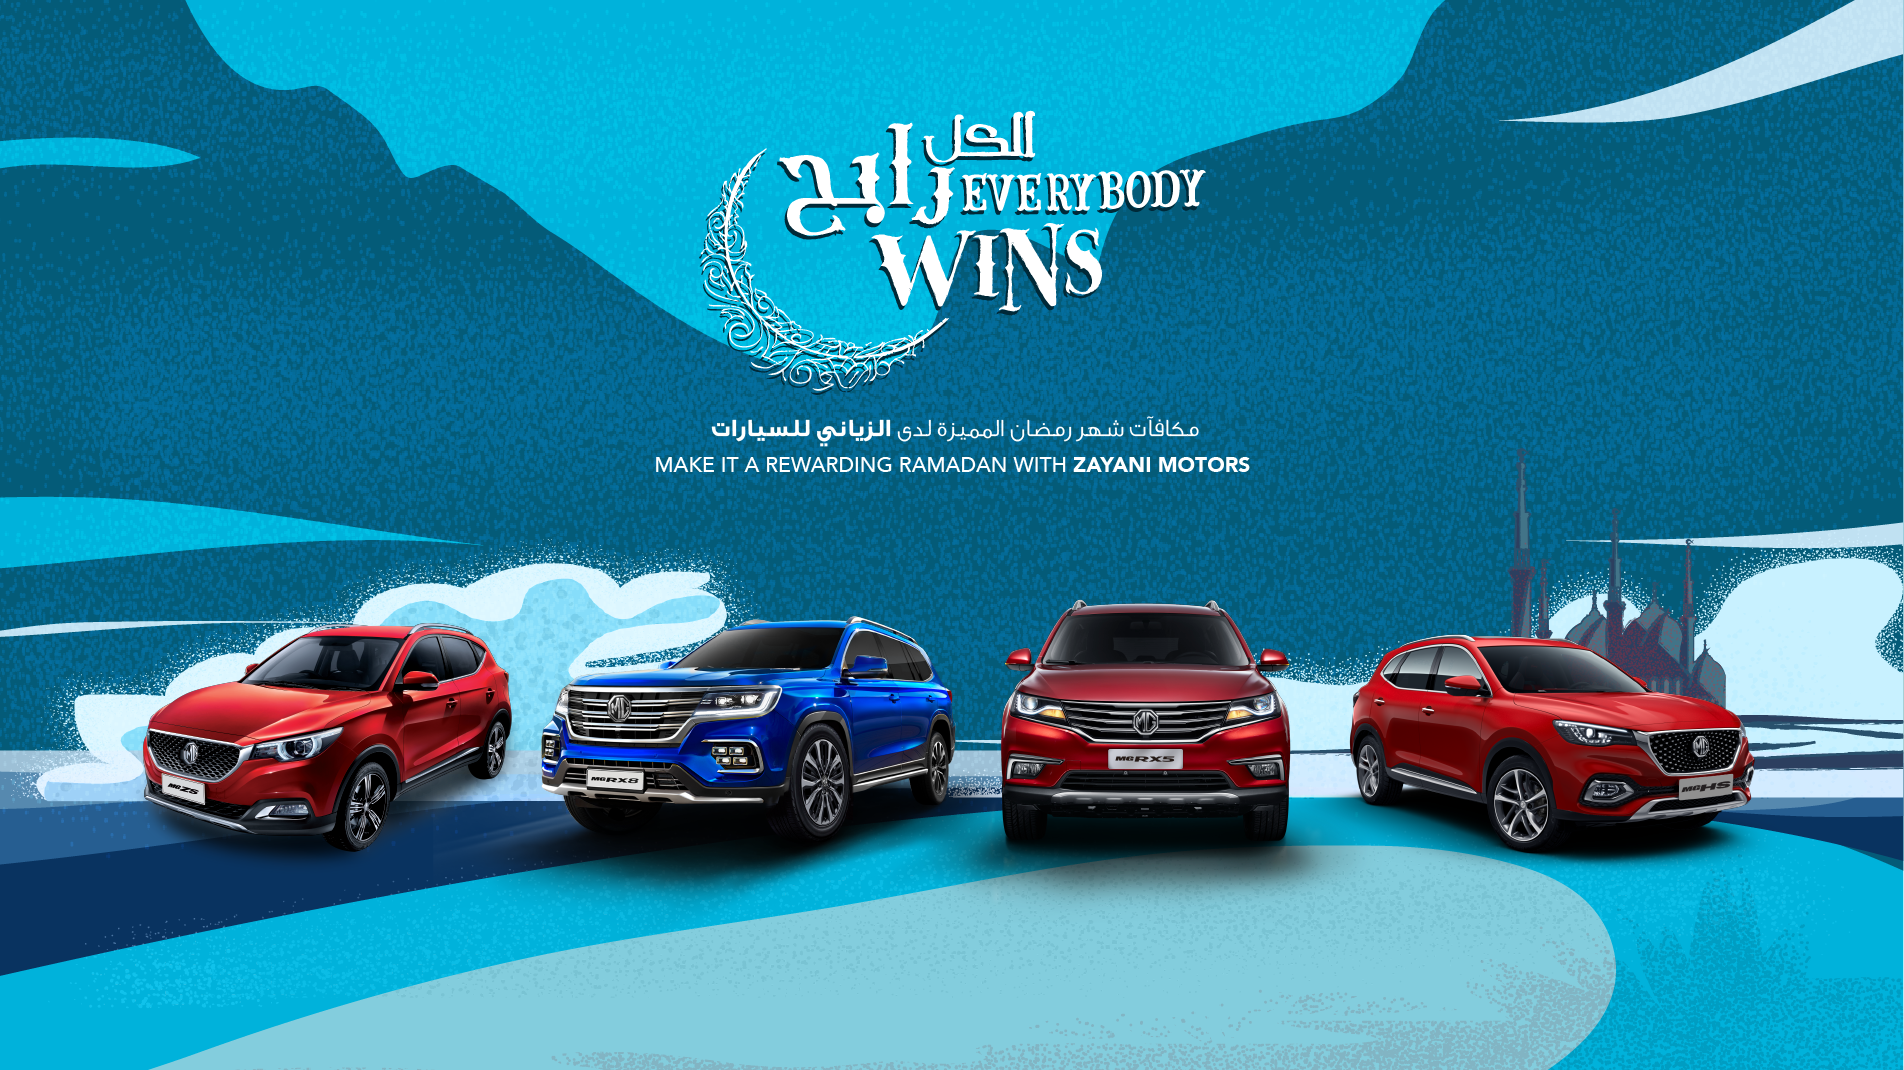 'Everyone's a Winner' Returns with Exclusive Offers on Mitsubishi & MG